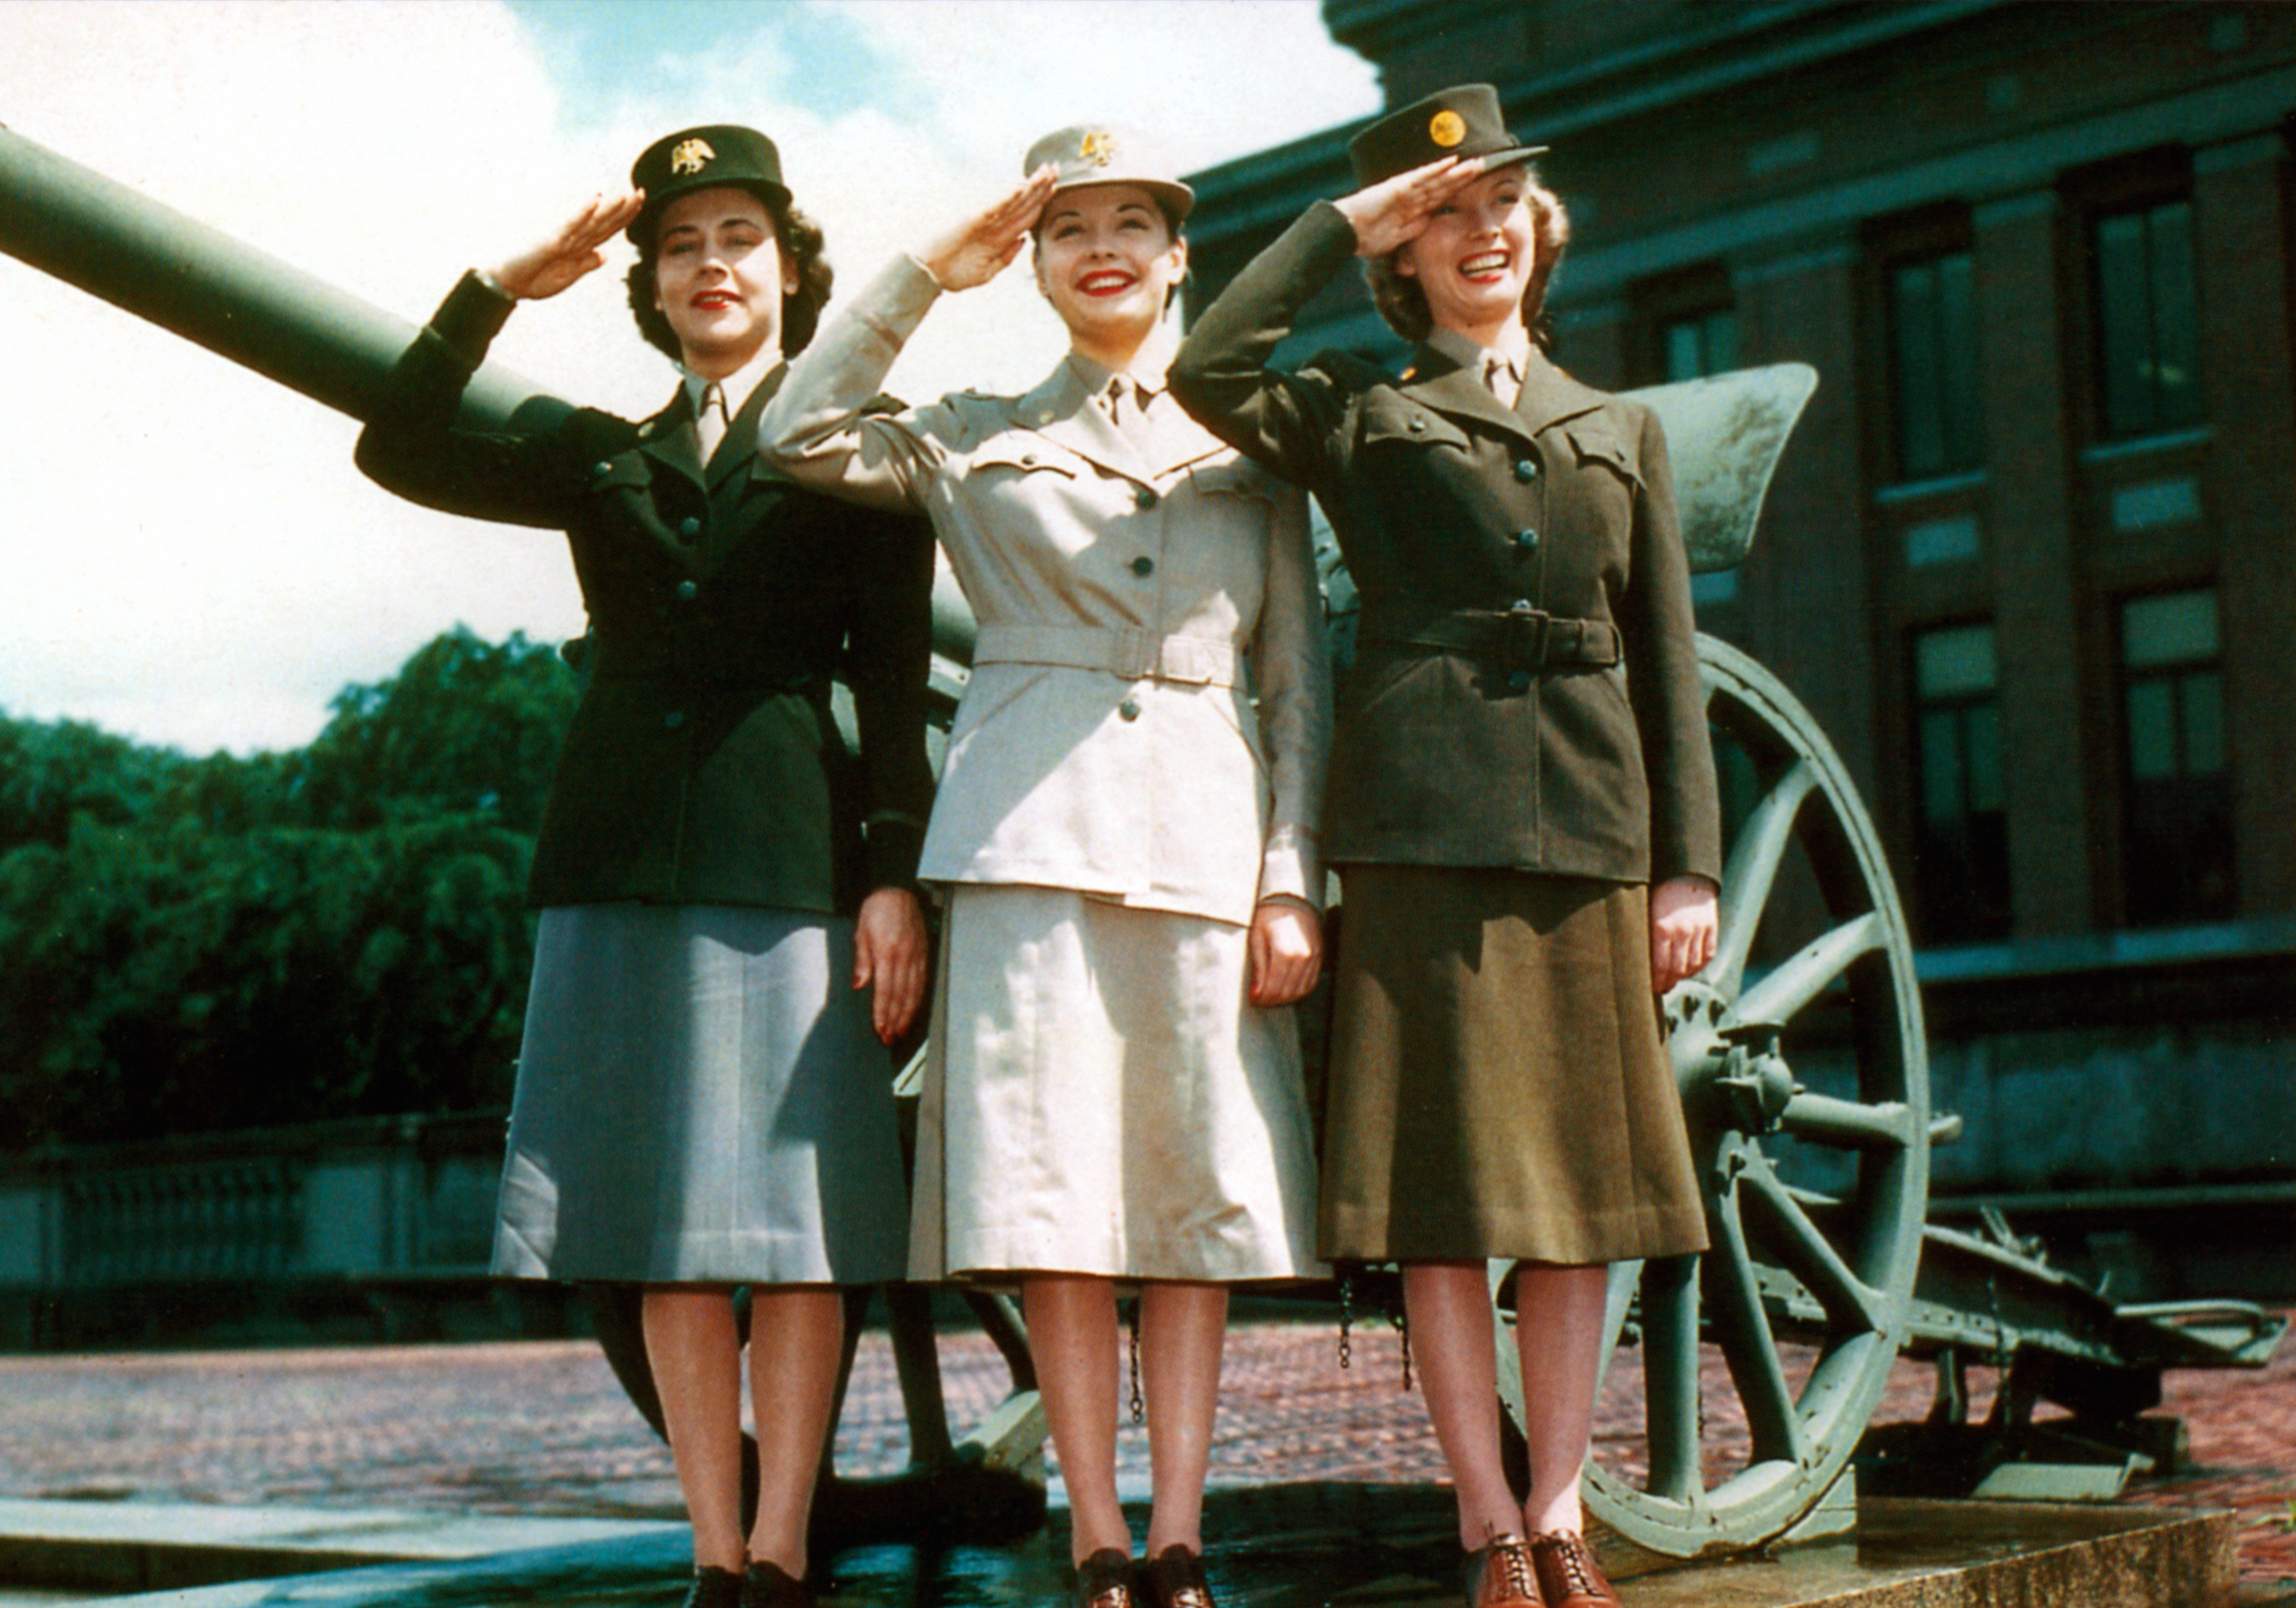 Women's Auxiliary Army Corps (WAAC) uniform presentation in 1942